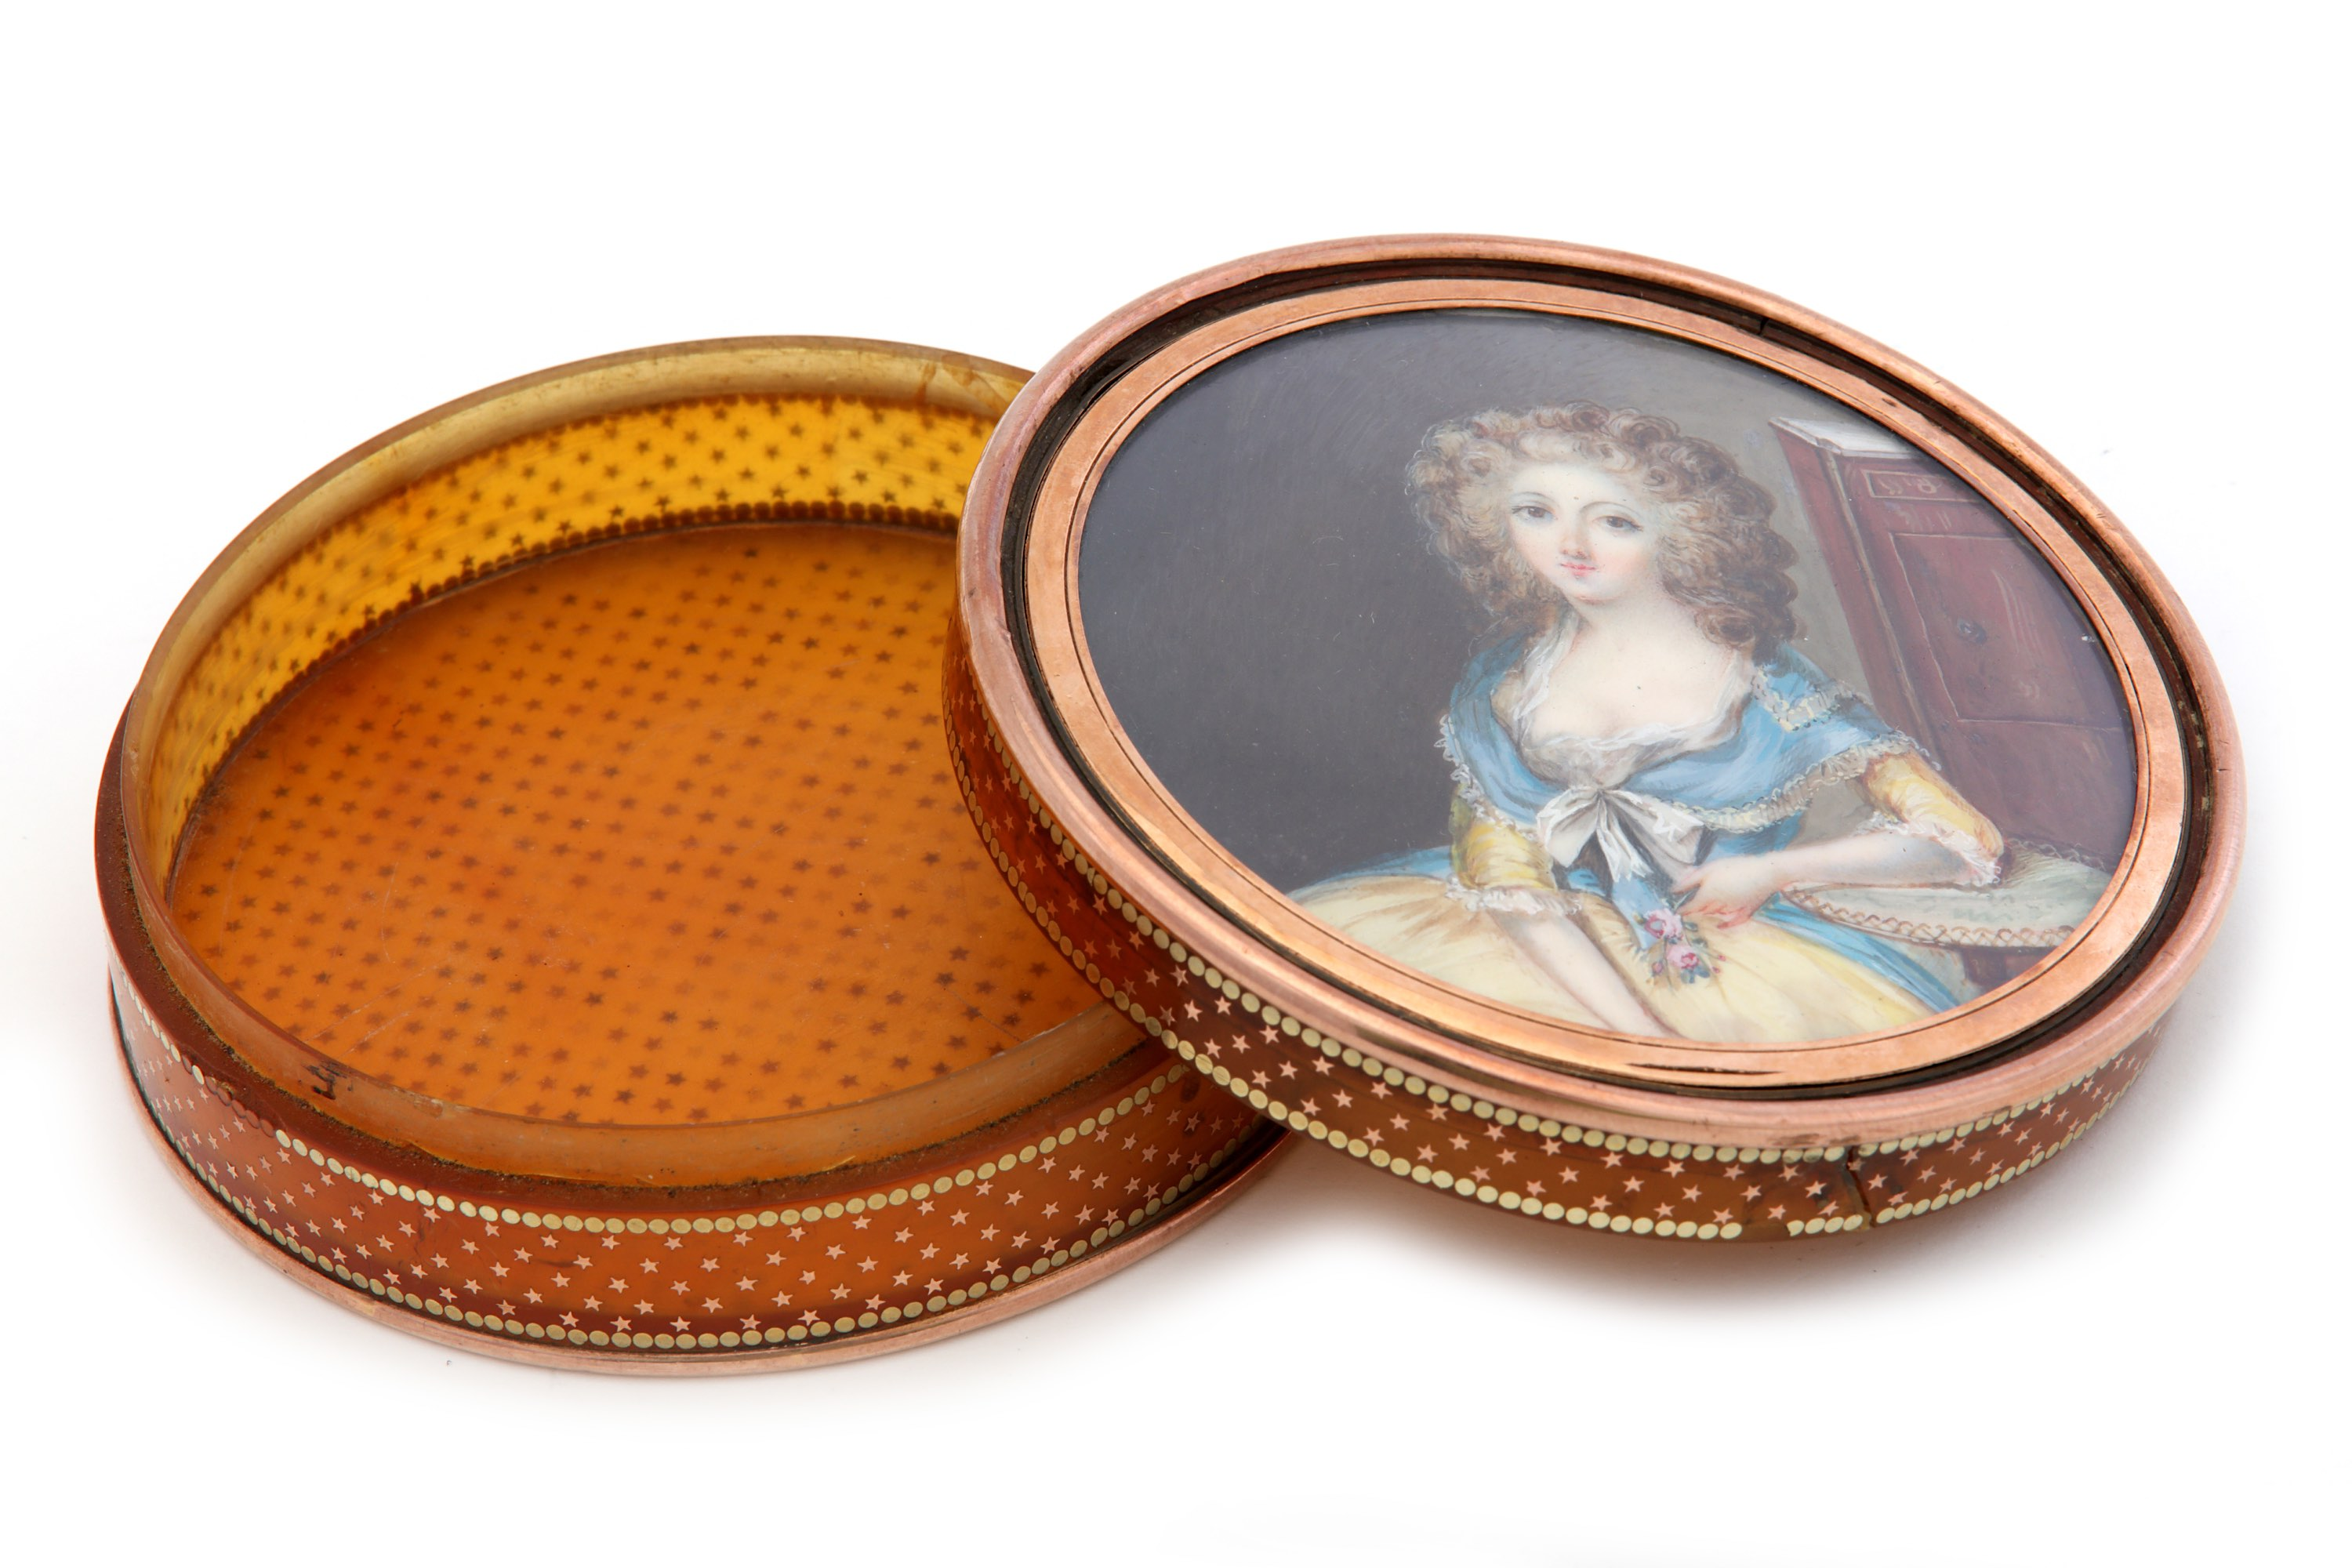 Lot 46 - A Louis XVI late 18th century French blond tortoiseshell and gold pique snuff box, Paris circa 1780